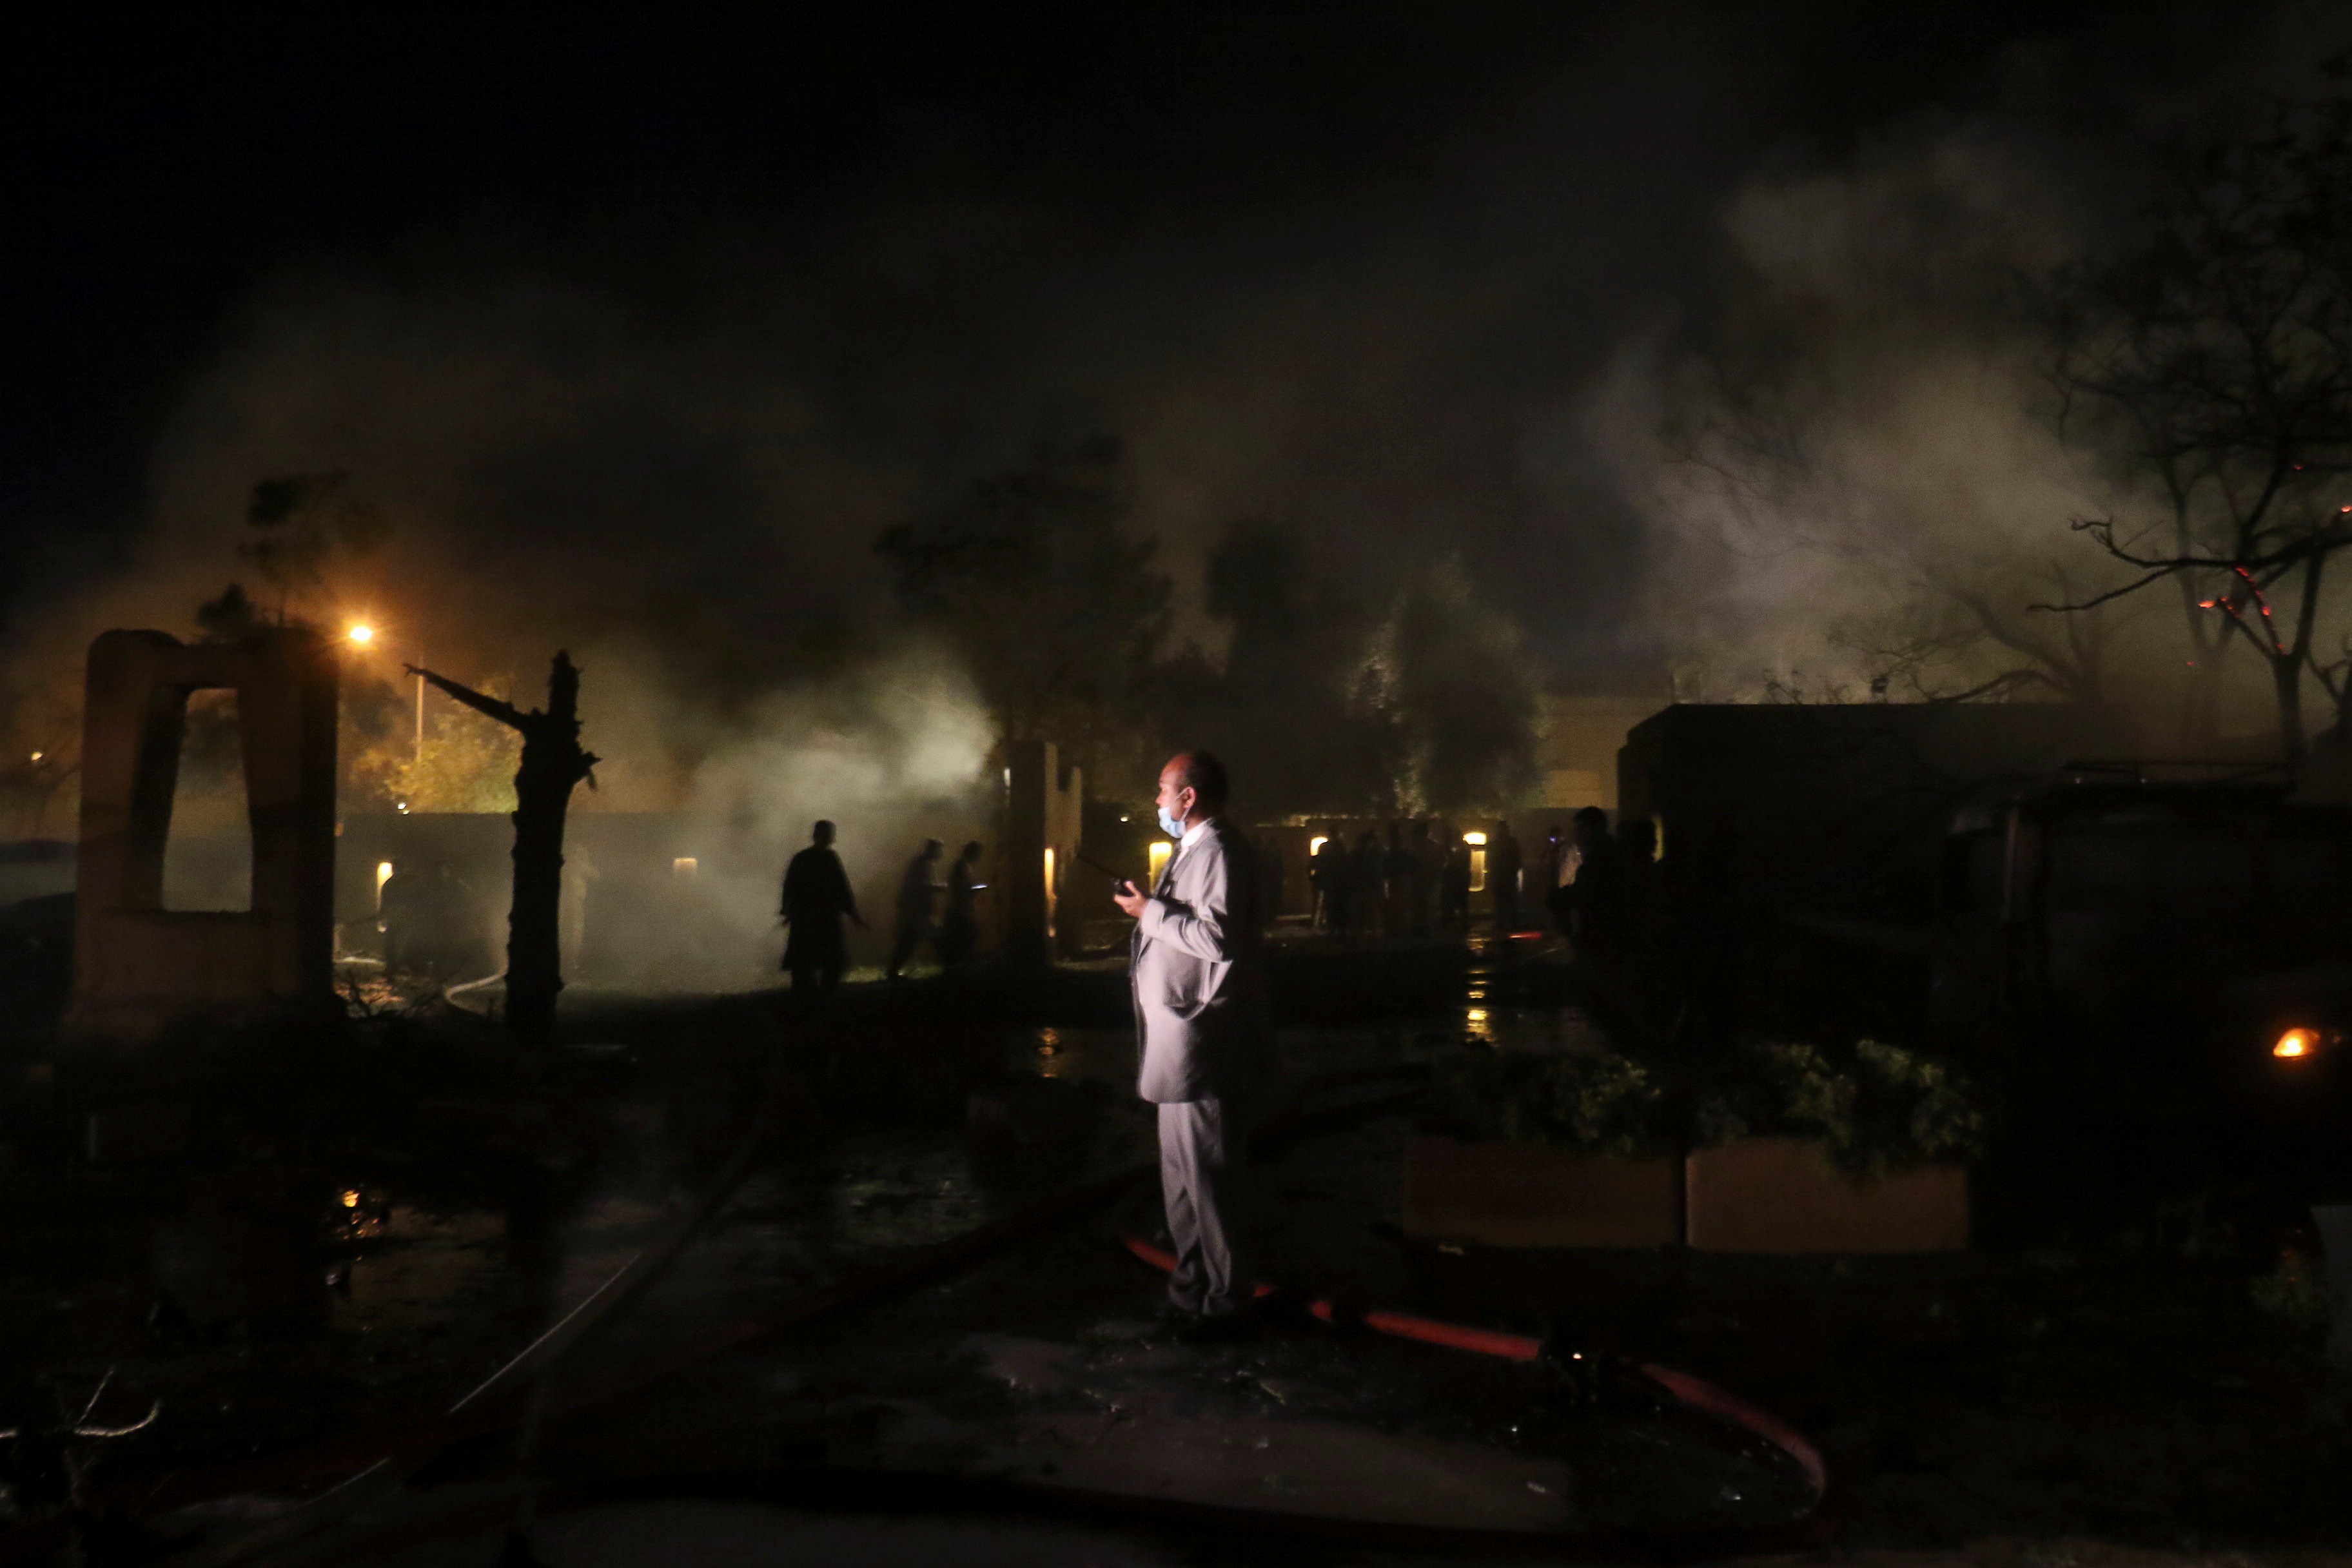 A man uses a walkie talkie as he stands amid smoke from the burning vehicles after an explosion at a luxury hotel in Quetta, Pakistan April 21, 2021. REUTERS/Naseer Ahmed